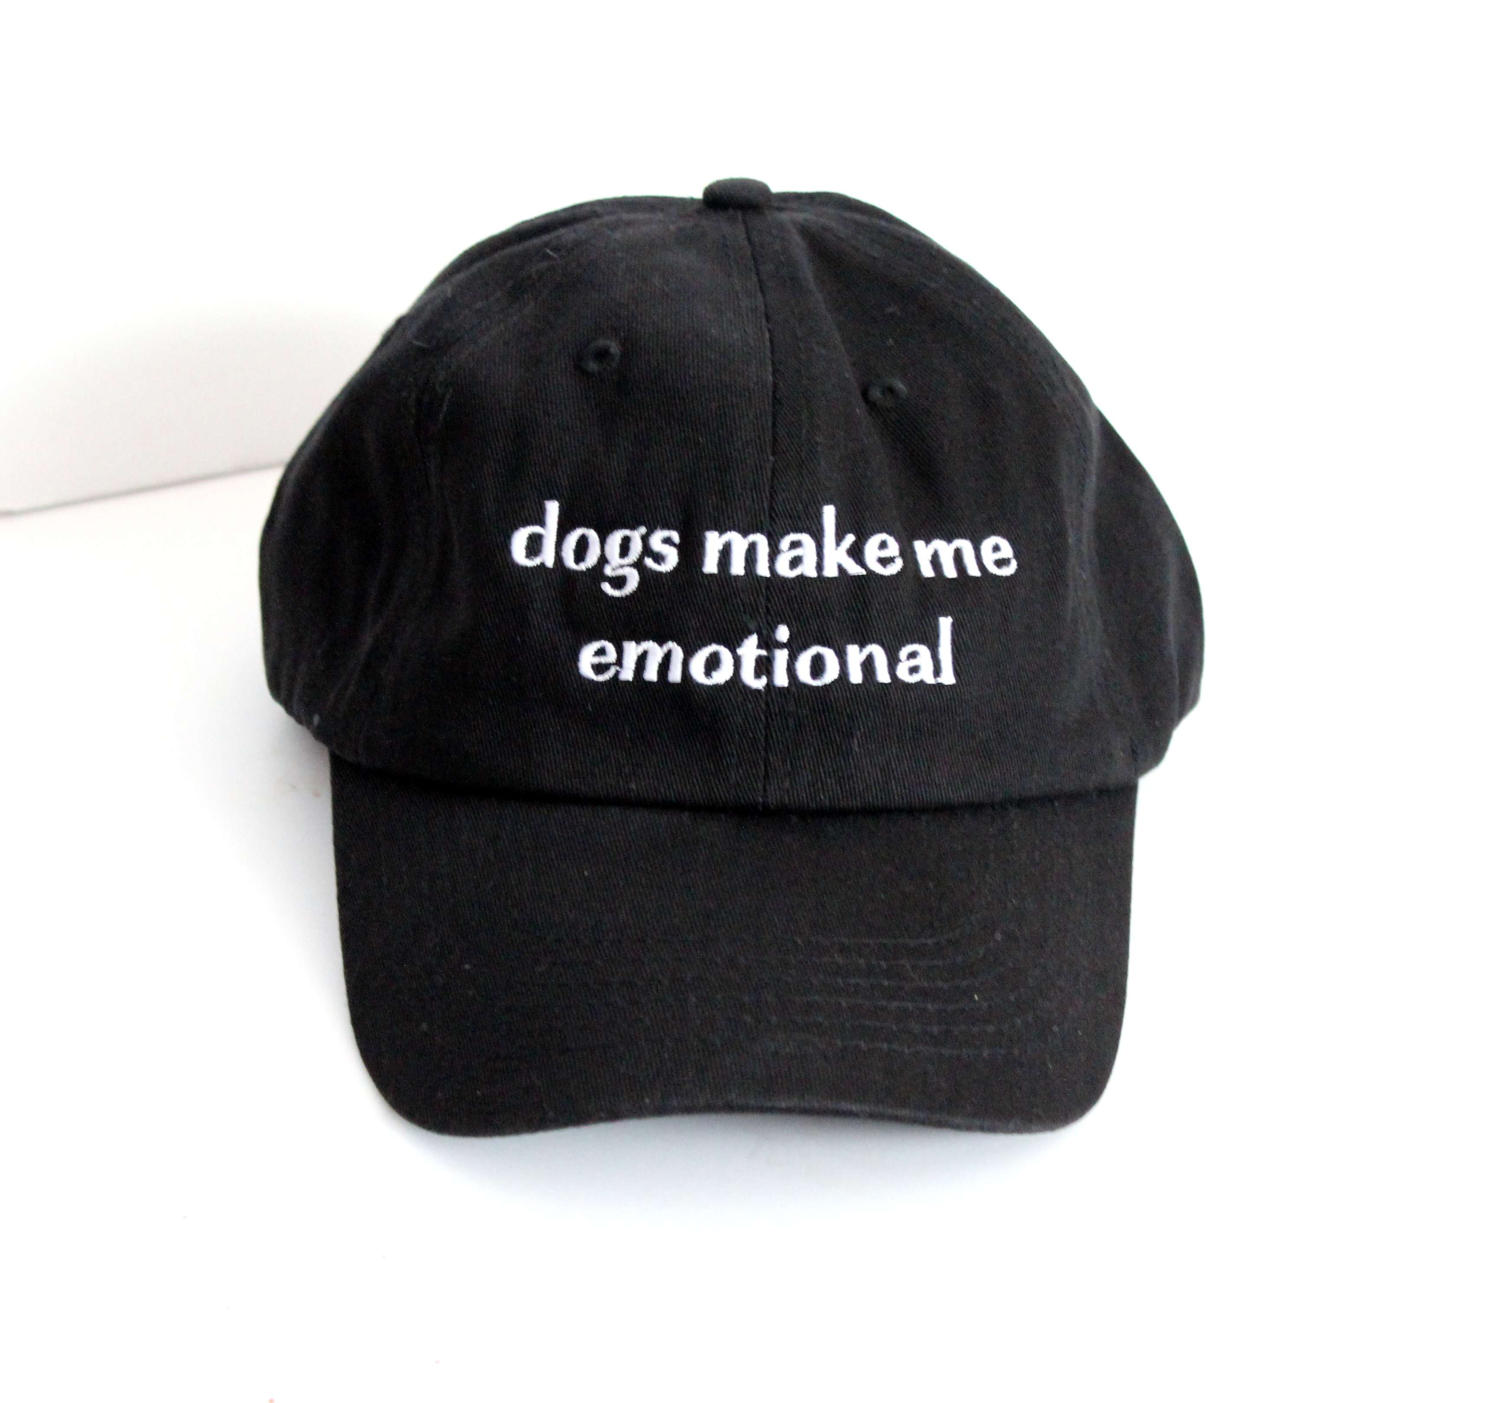 Dogs Make Me Emotional black and white Embroidered Dad hat    cotton ... 1830059a18f7